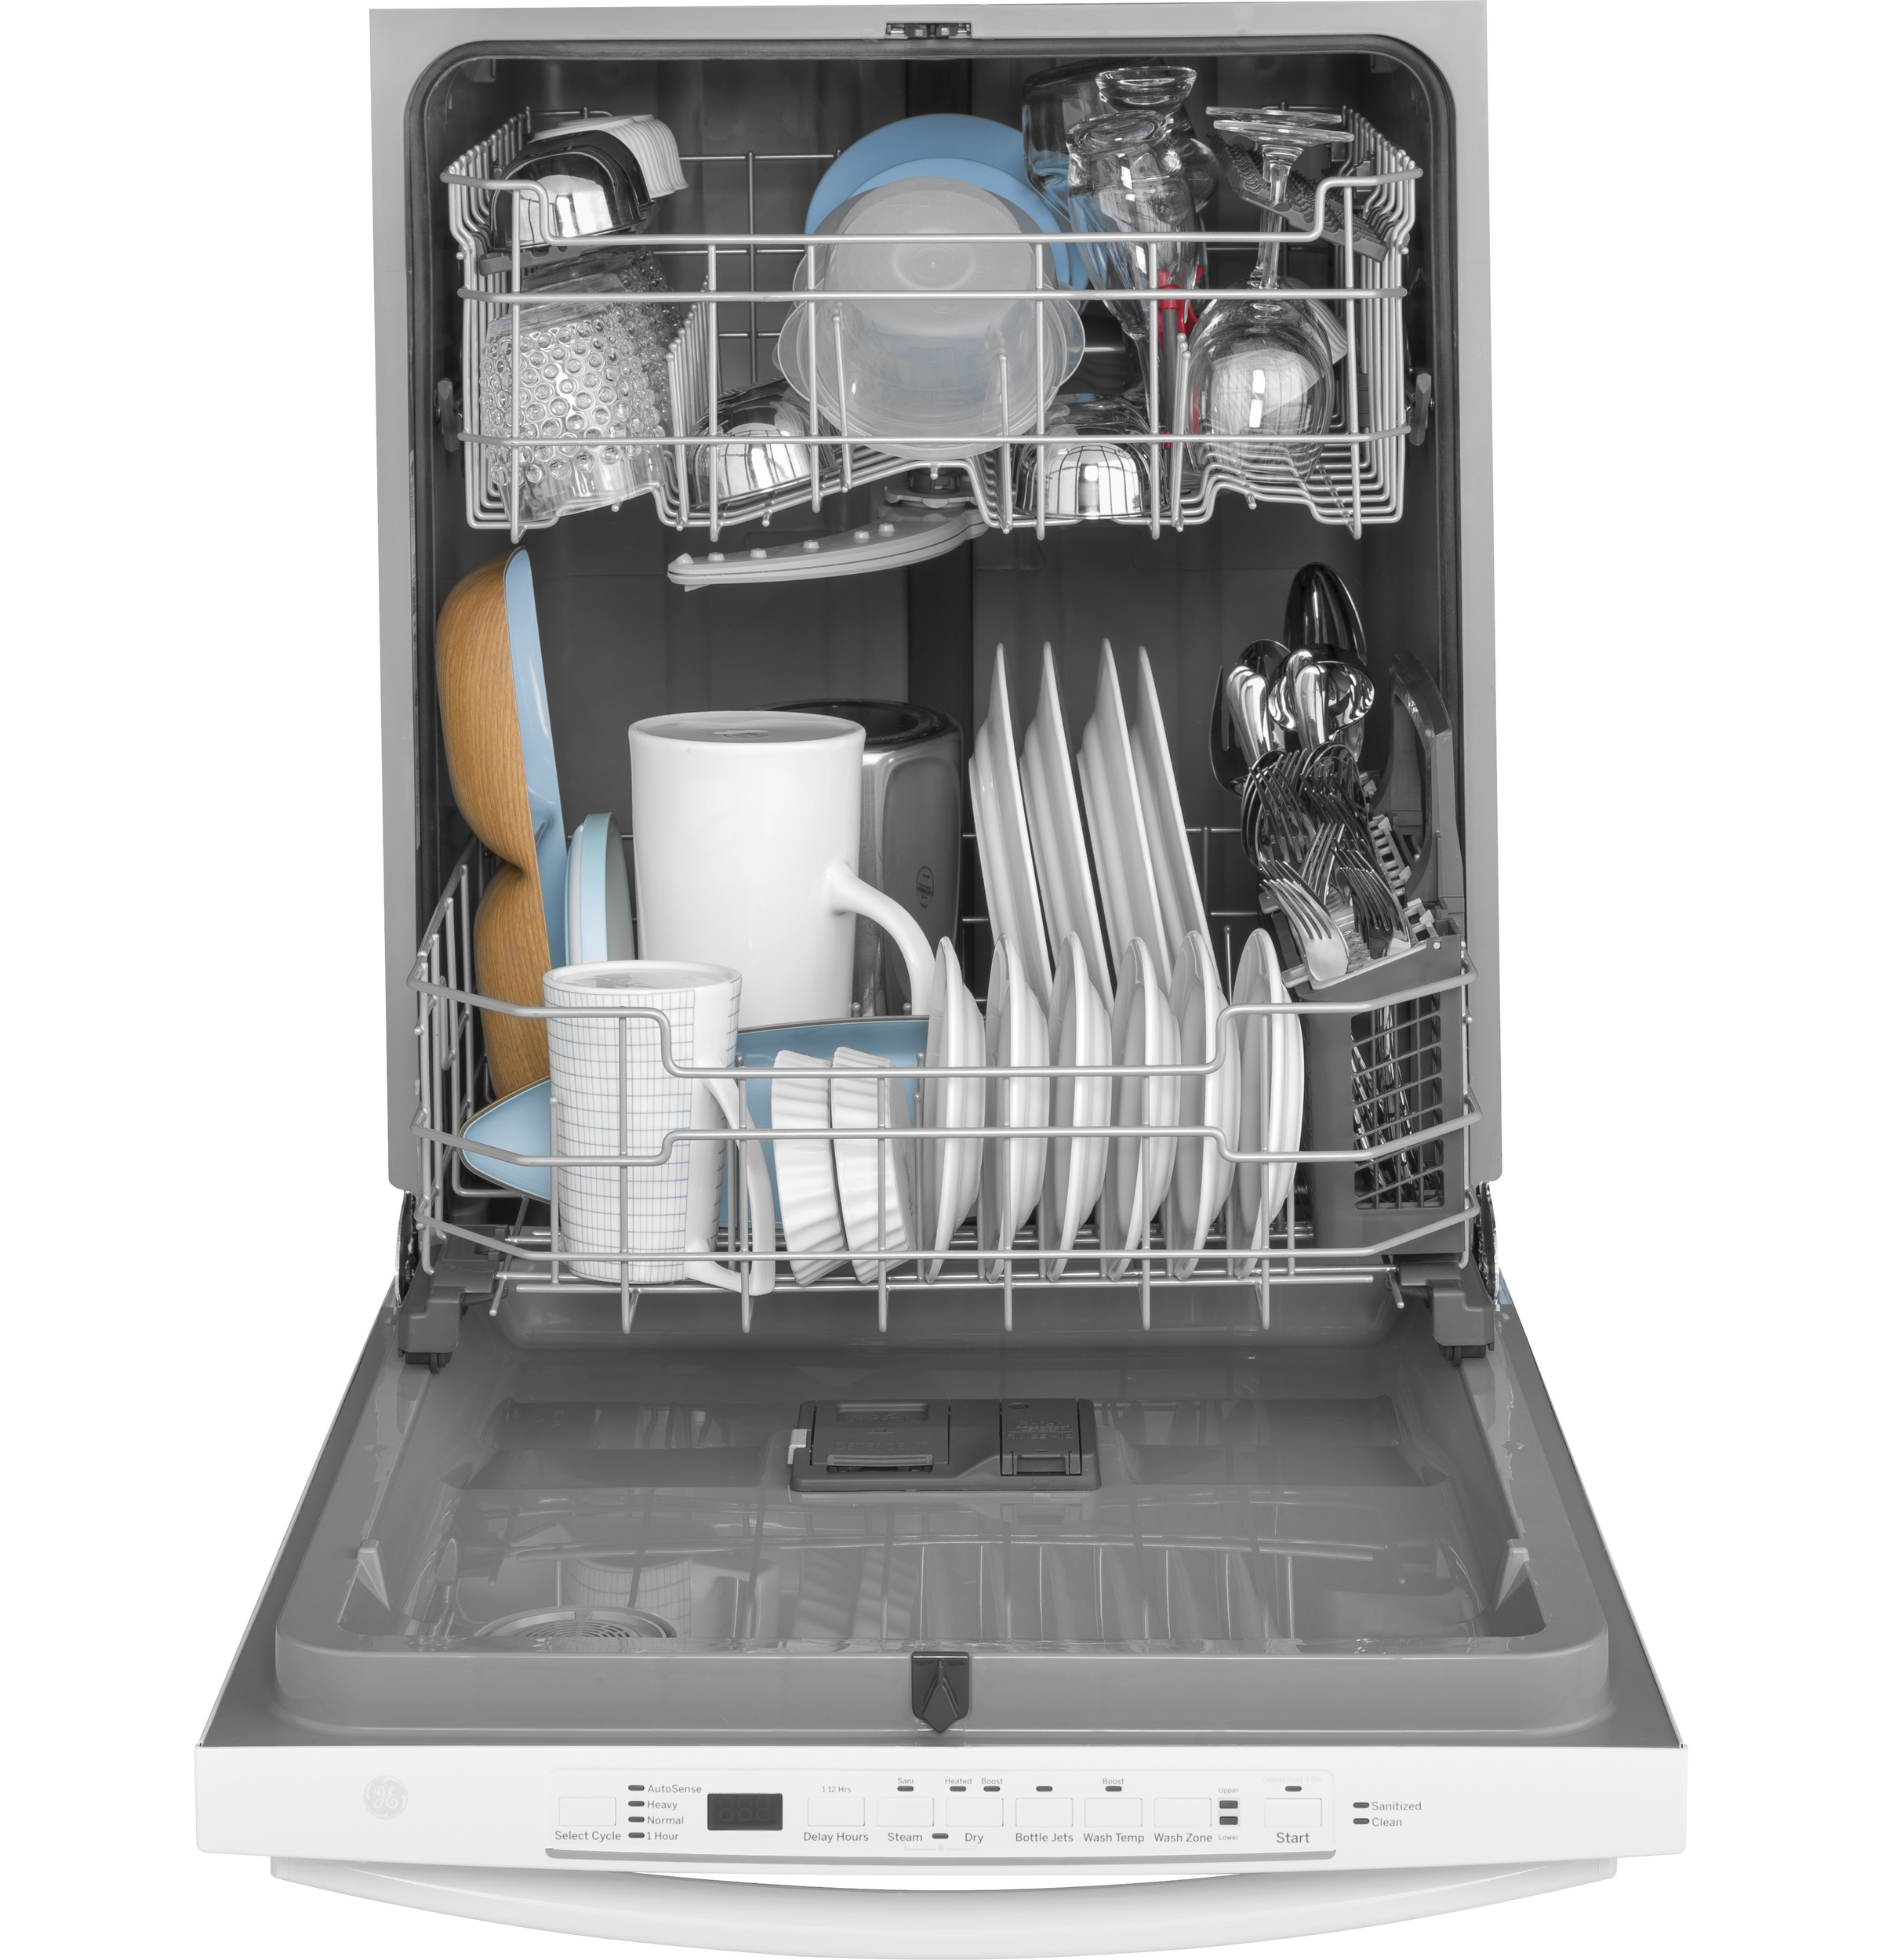 Model: GDT605PGMWW | GE GE® Dishwasher with Hidden Controls